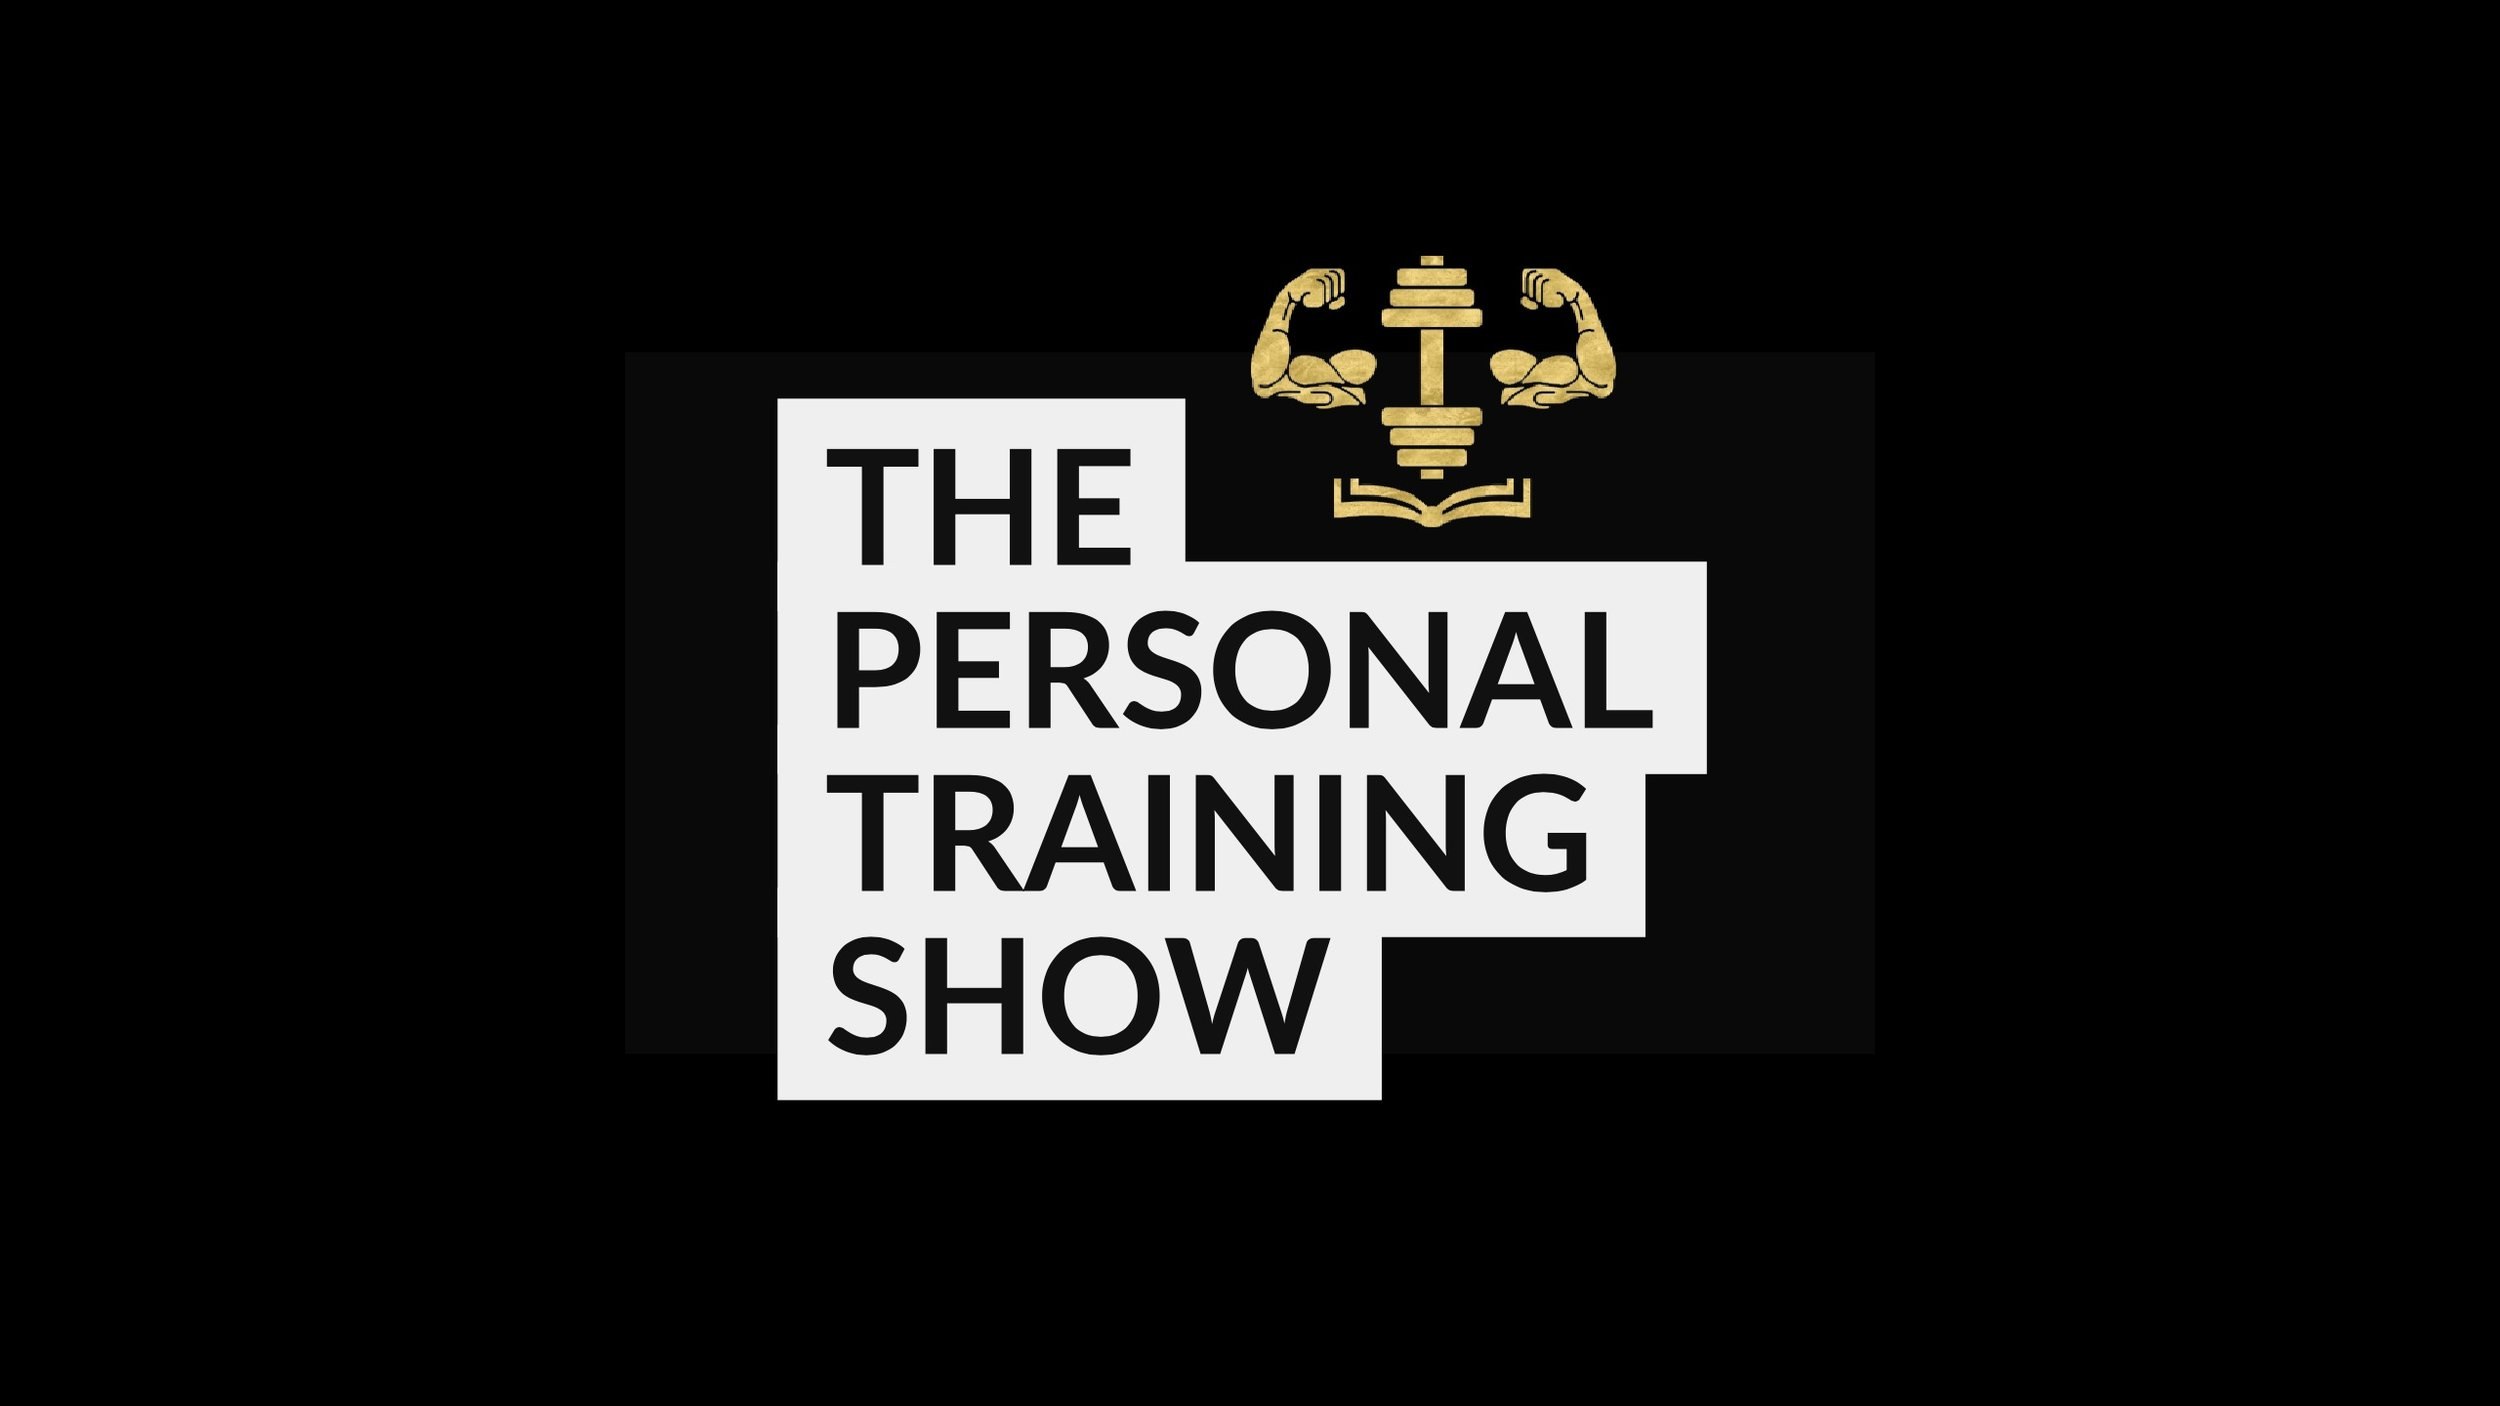 The Personal Training Show Social Sharing Logo 002.jpg